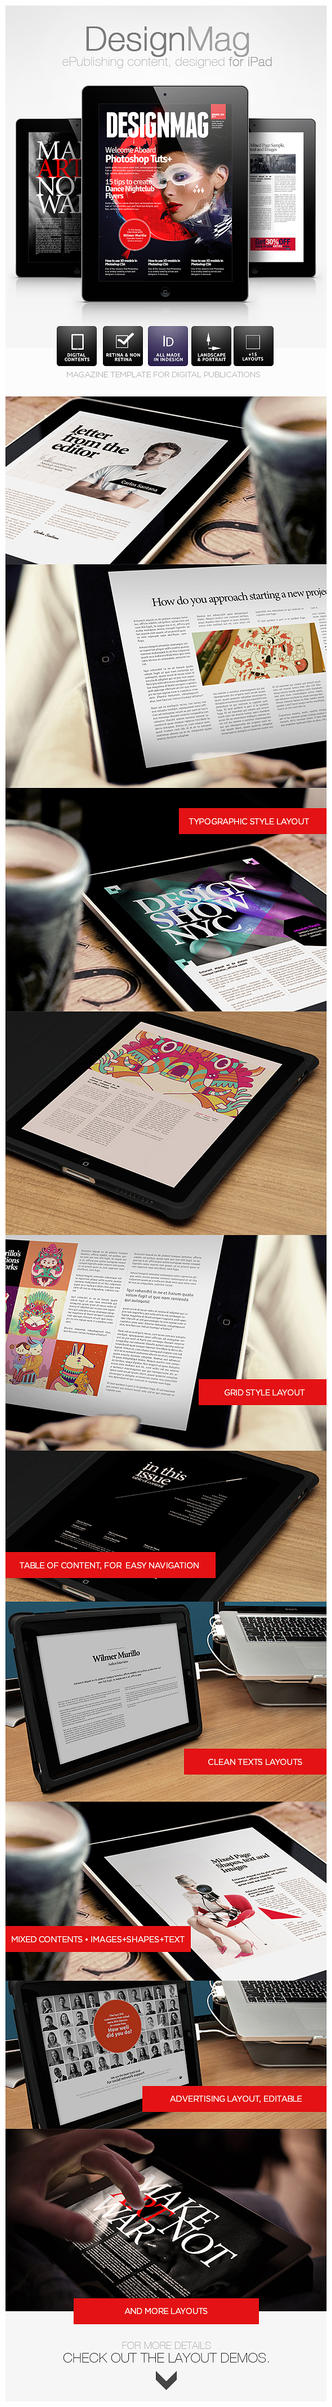 DesignMag iPad Magazine Template by EAMejia